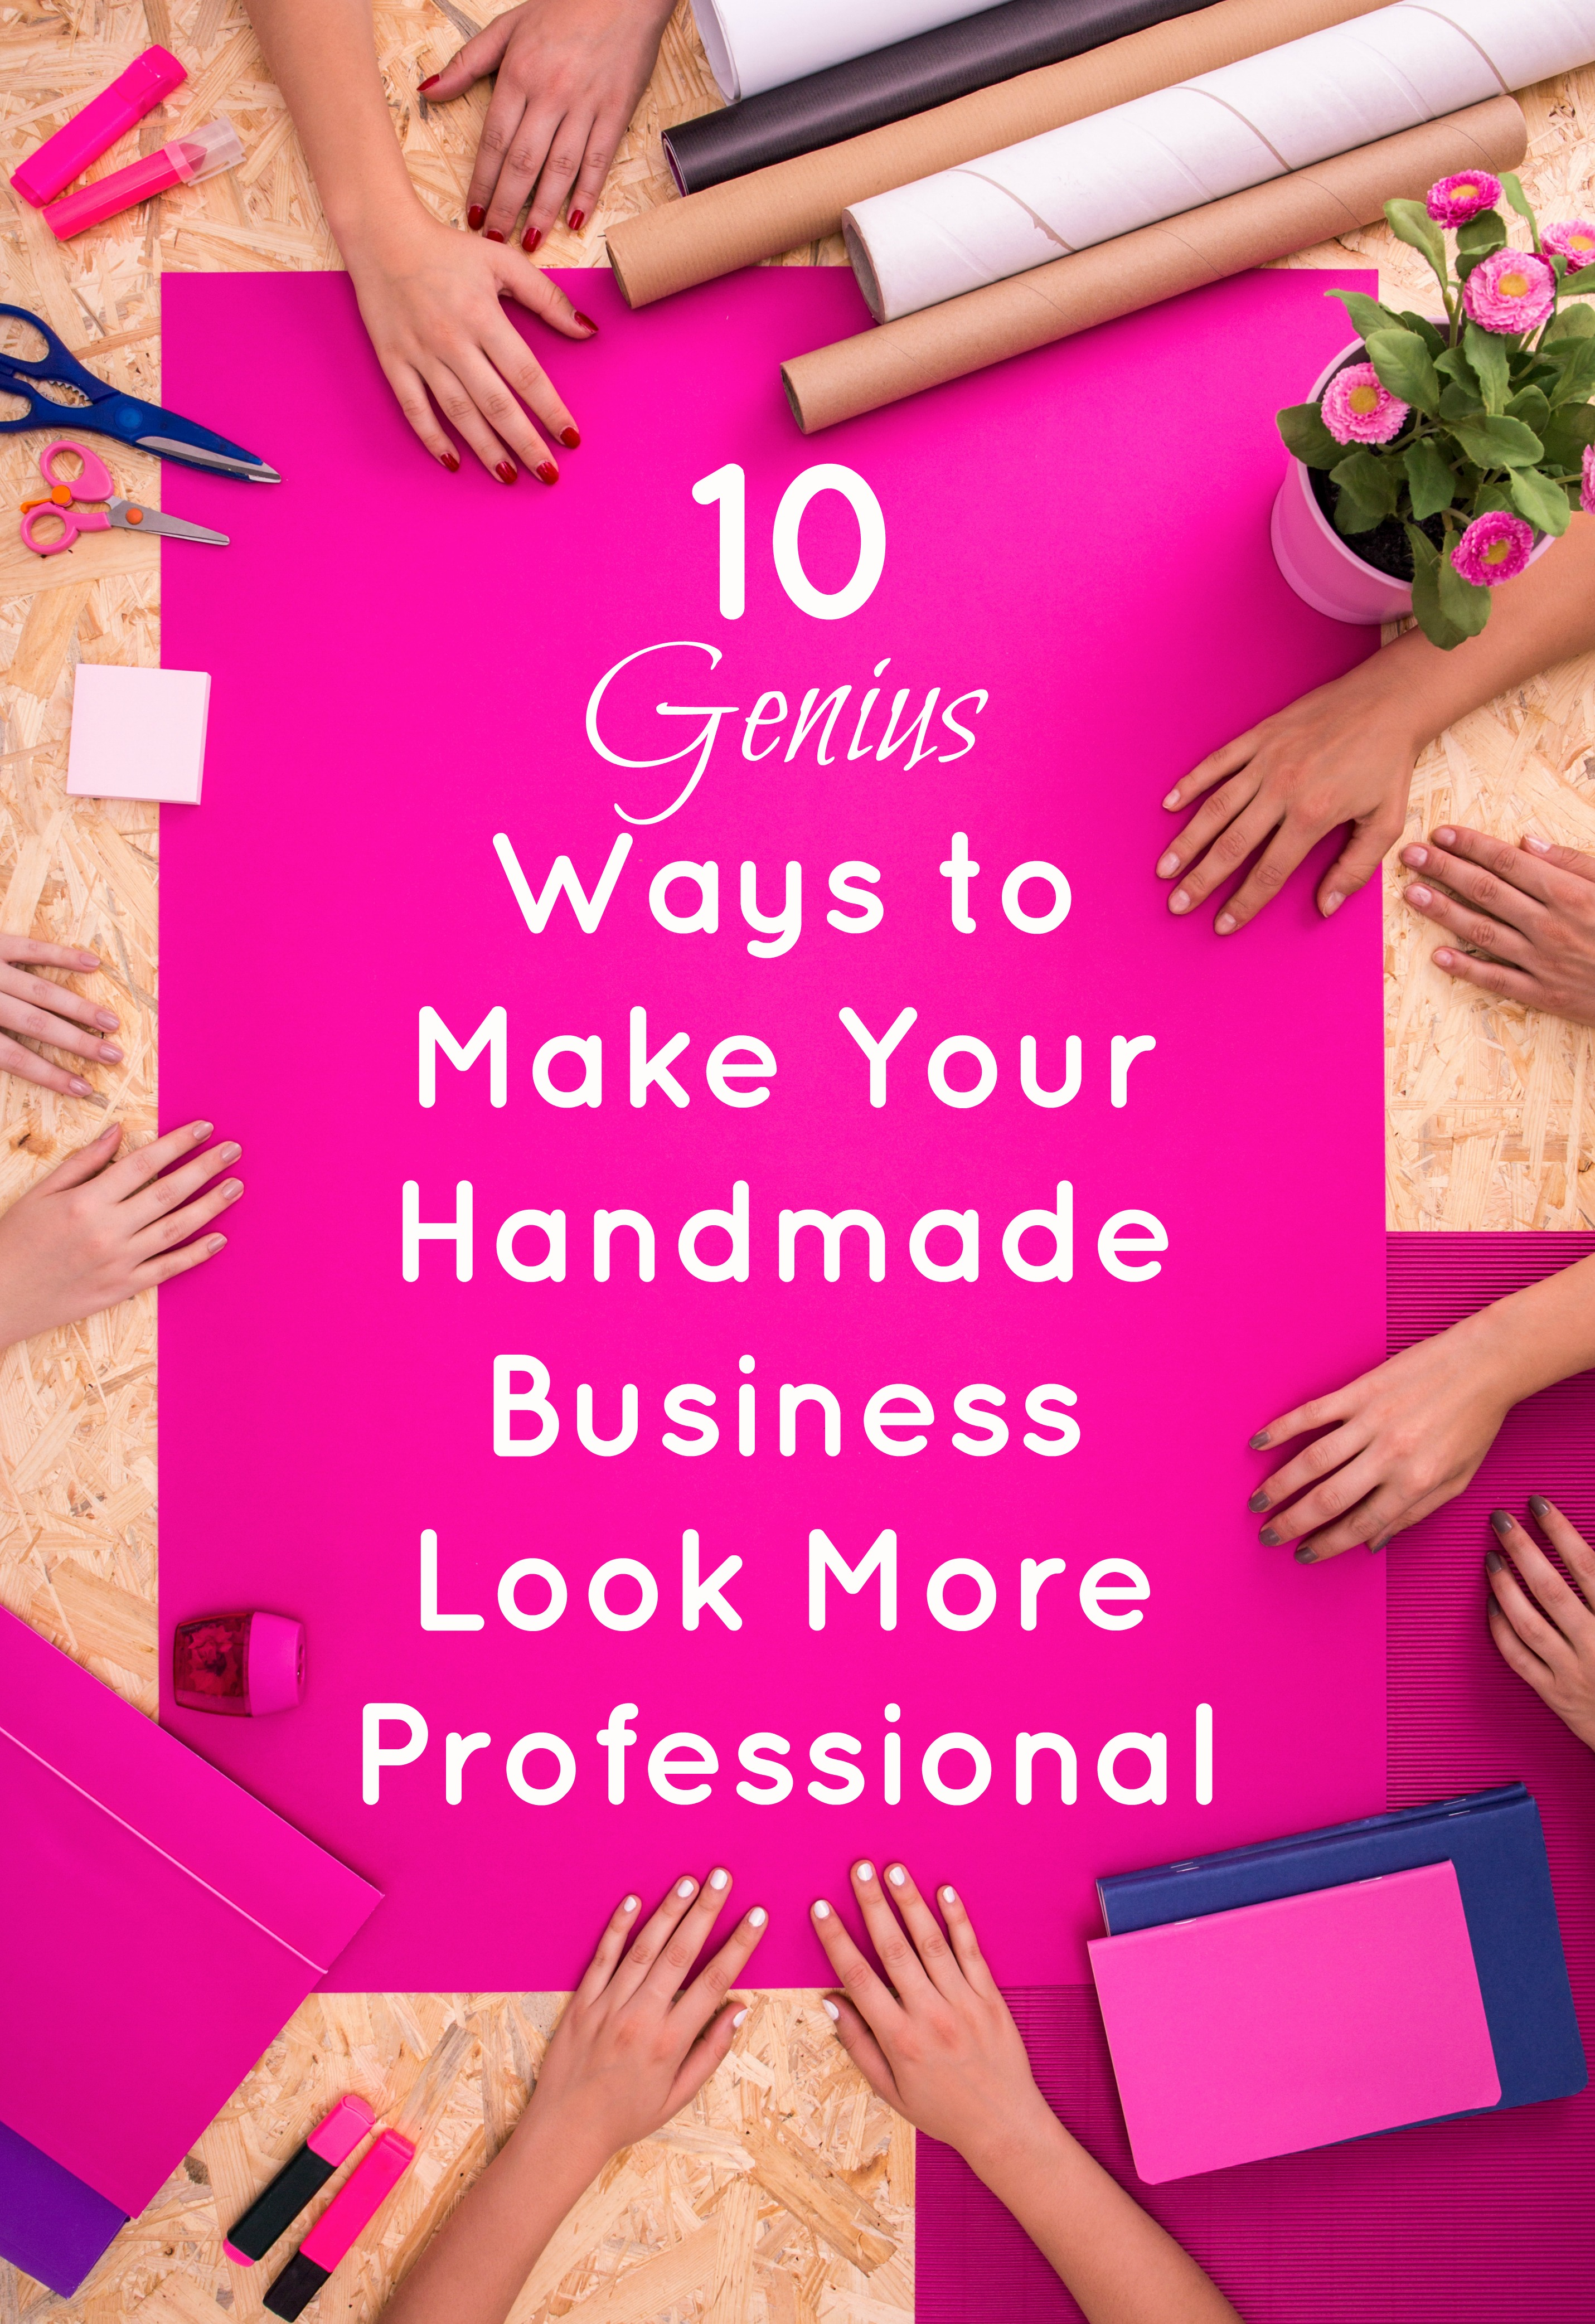 How to Make Your Website Look More Professional: 10 Tips for Handmade Businesses